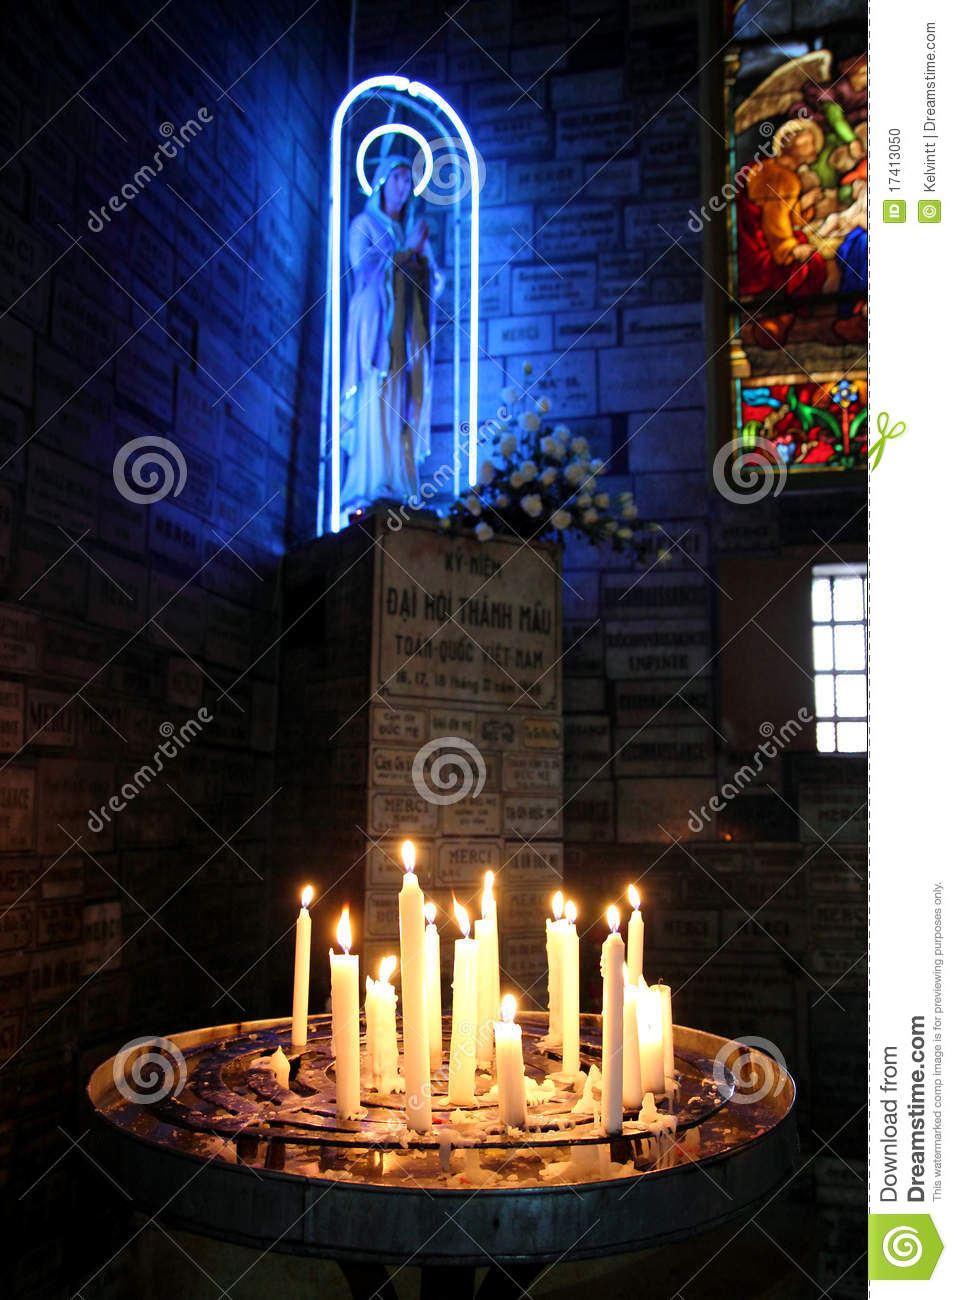 Mother Mary Statue and Candles